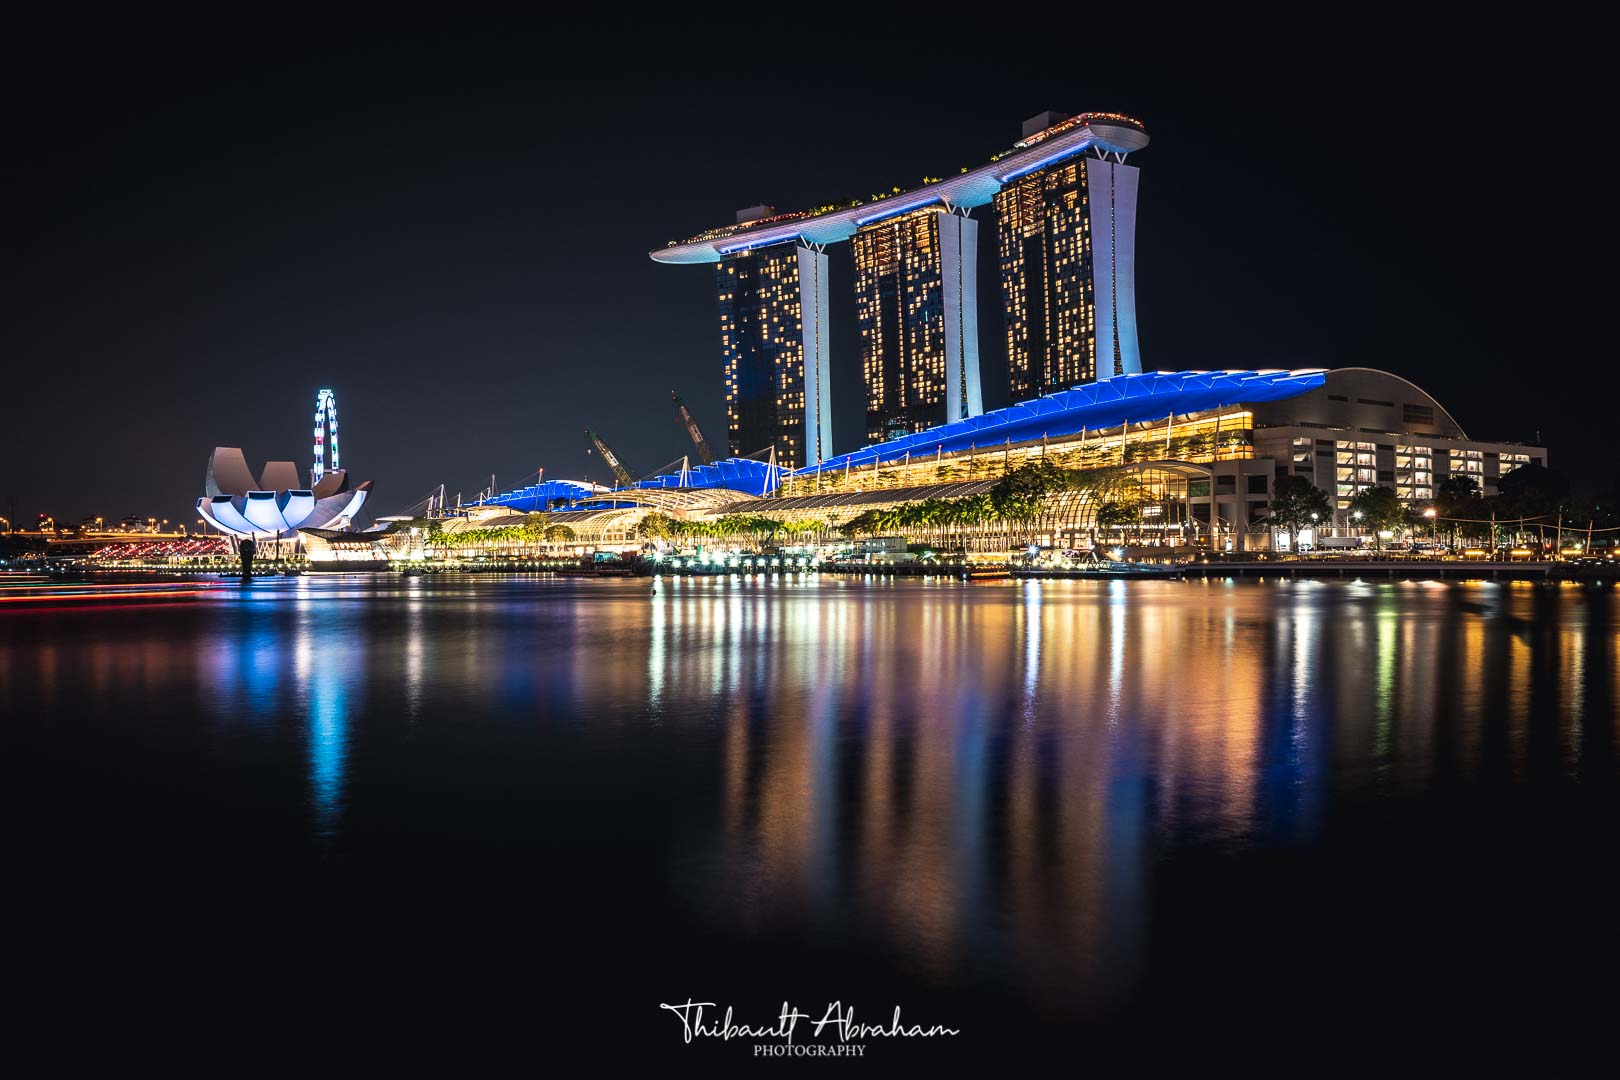 Night photograph of Marina Bay Sands in Singapore